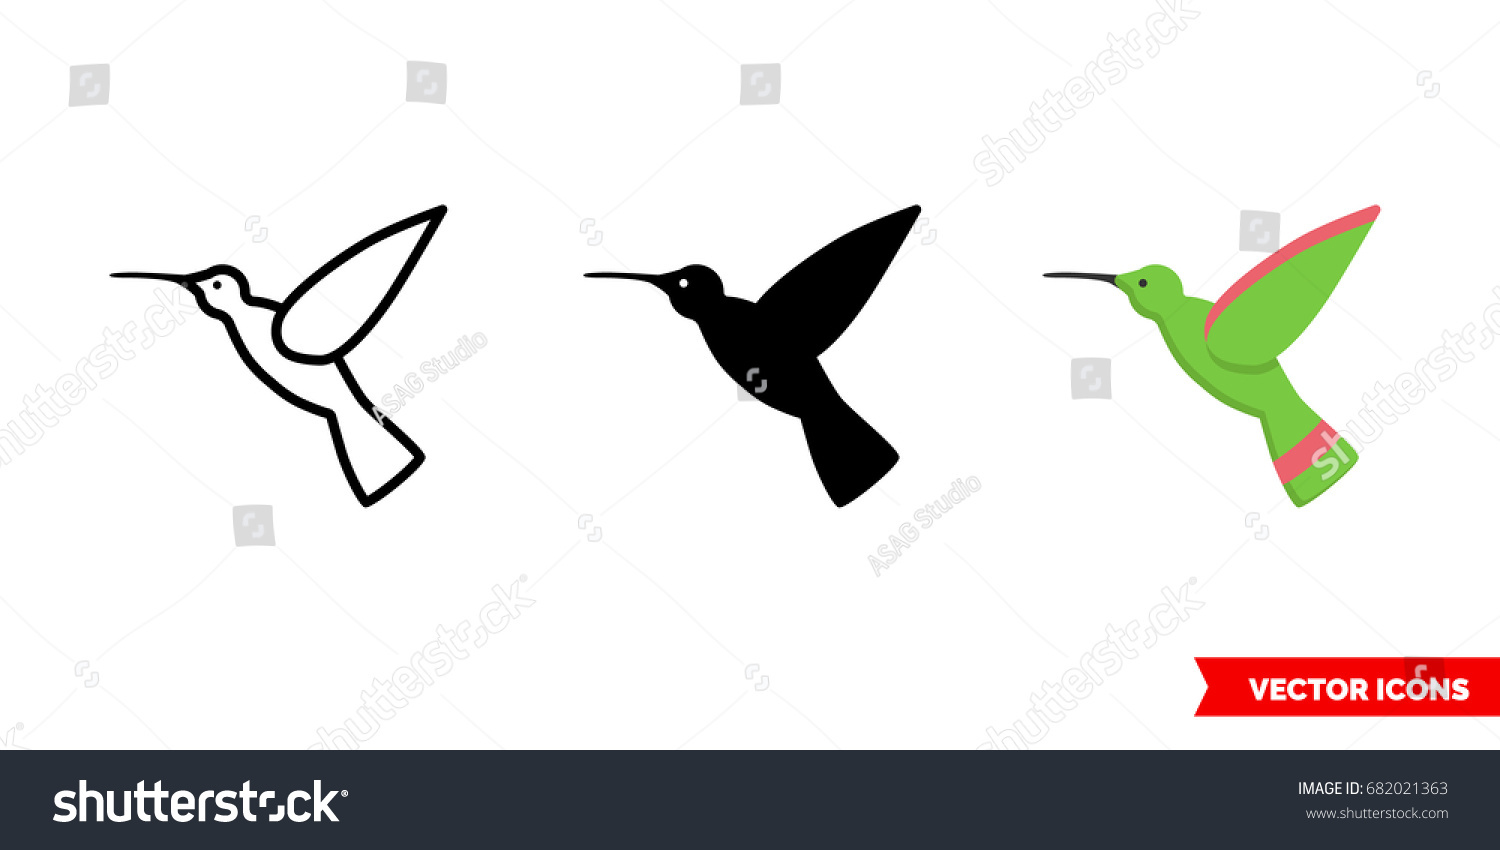 Hummingbird icon 3 types color black stock vector 682021363 hummingbird icon of 3 types color black and white outline isolated vector biocorpaavc Images